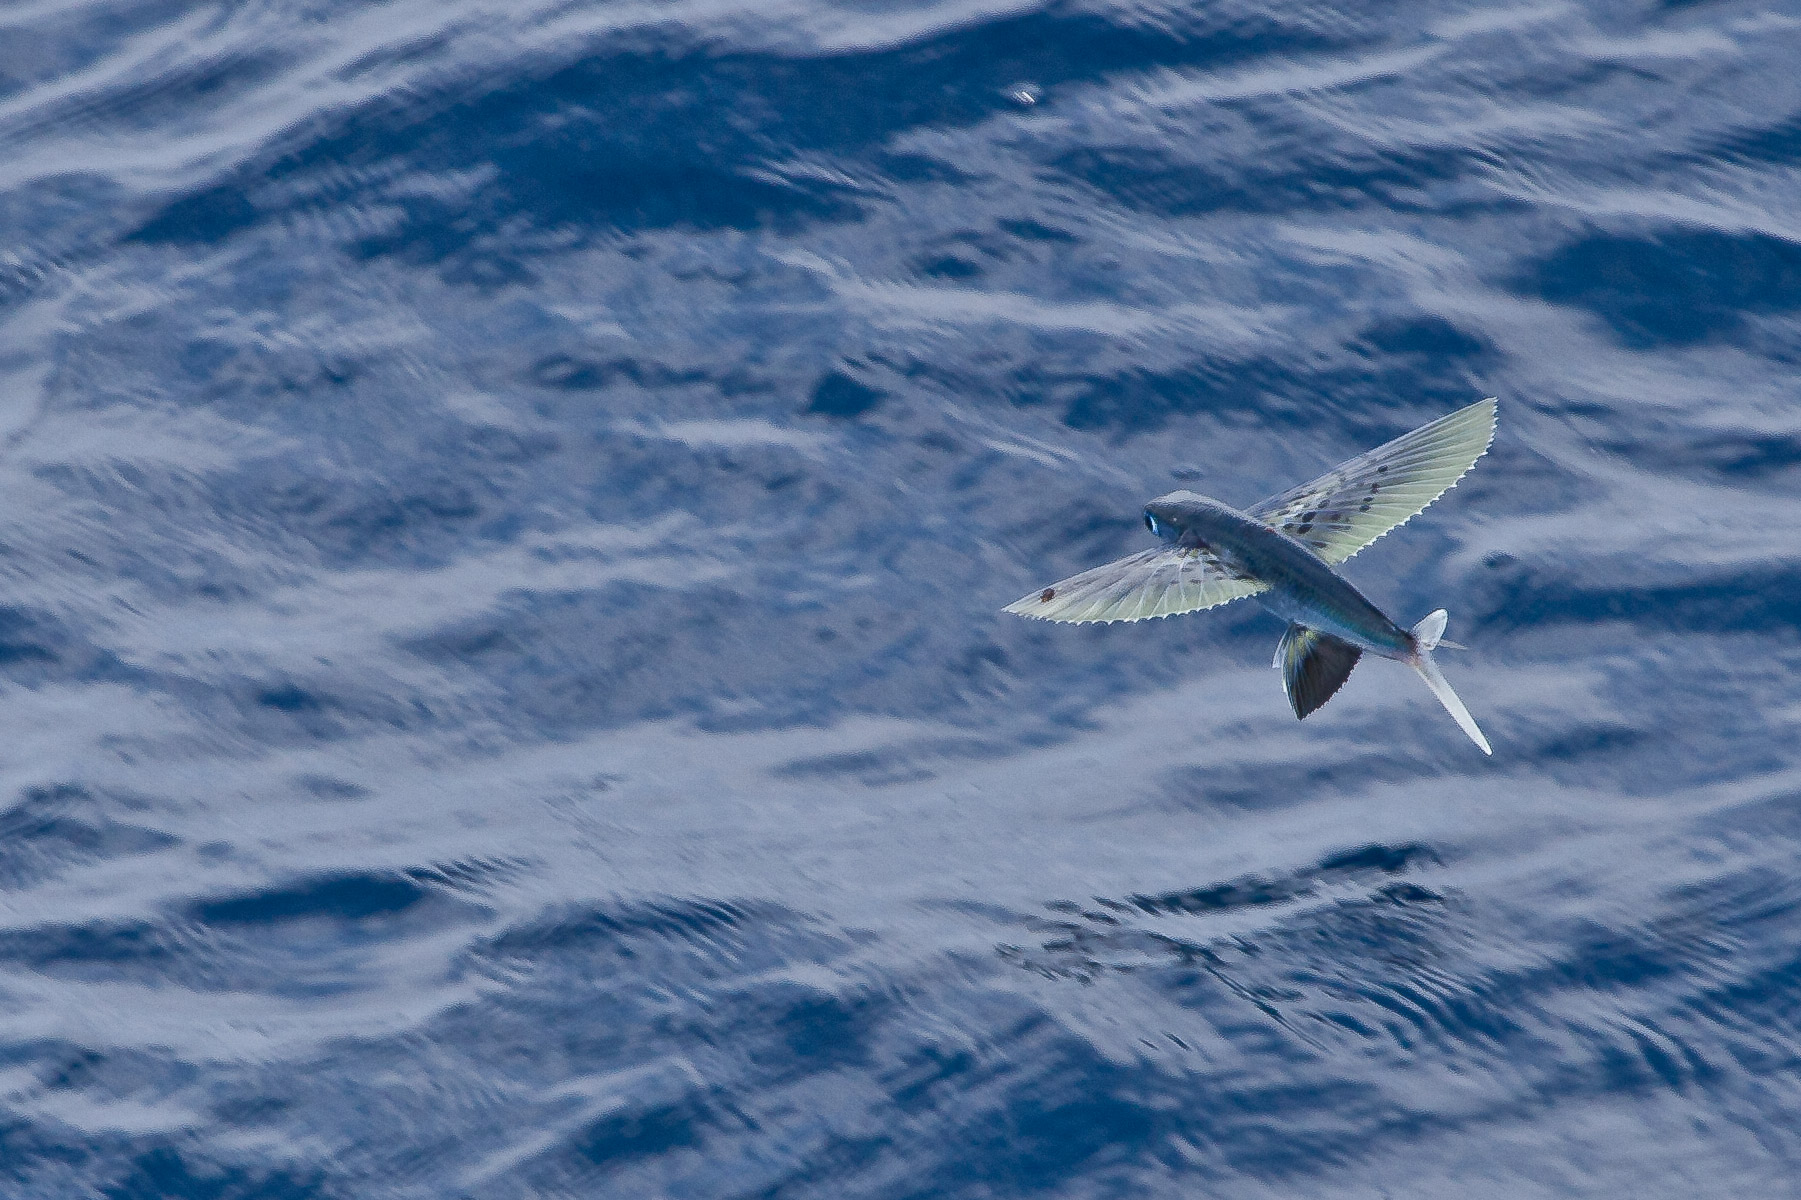 File:Flying Fish (5800263376).jpg - Wikimedia Commons